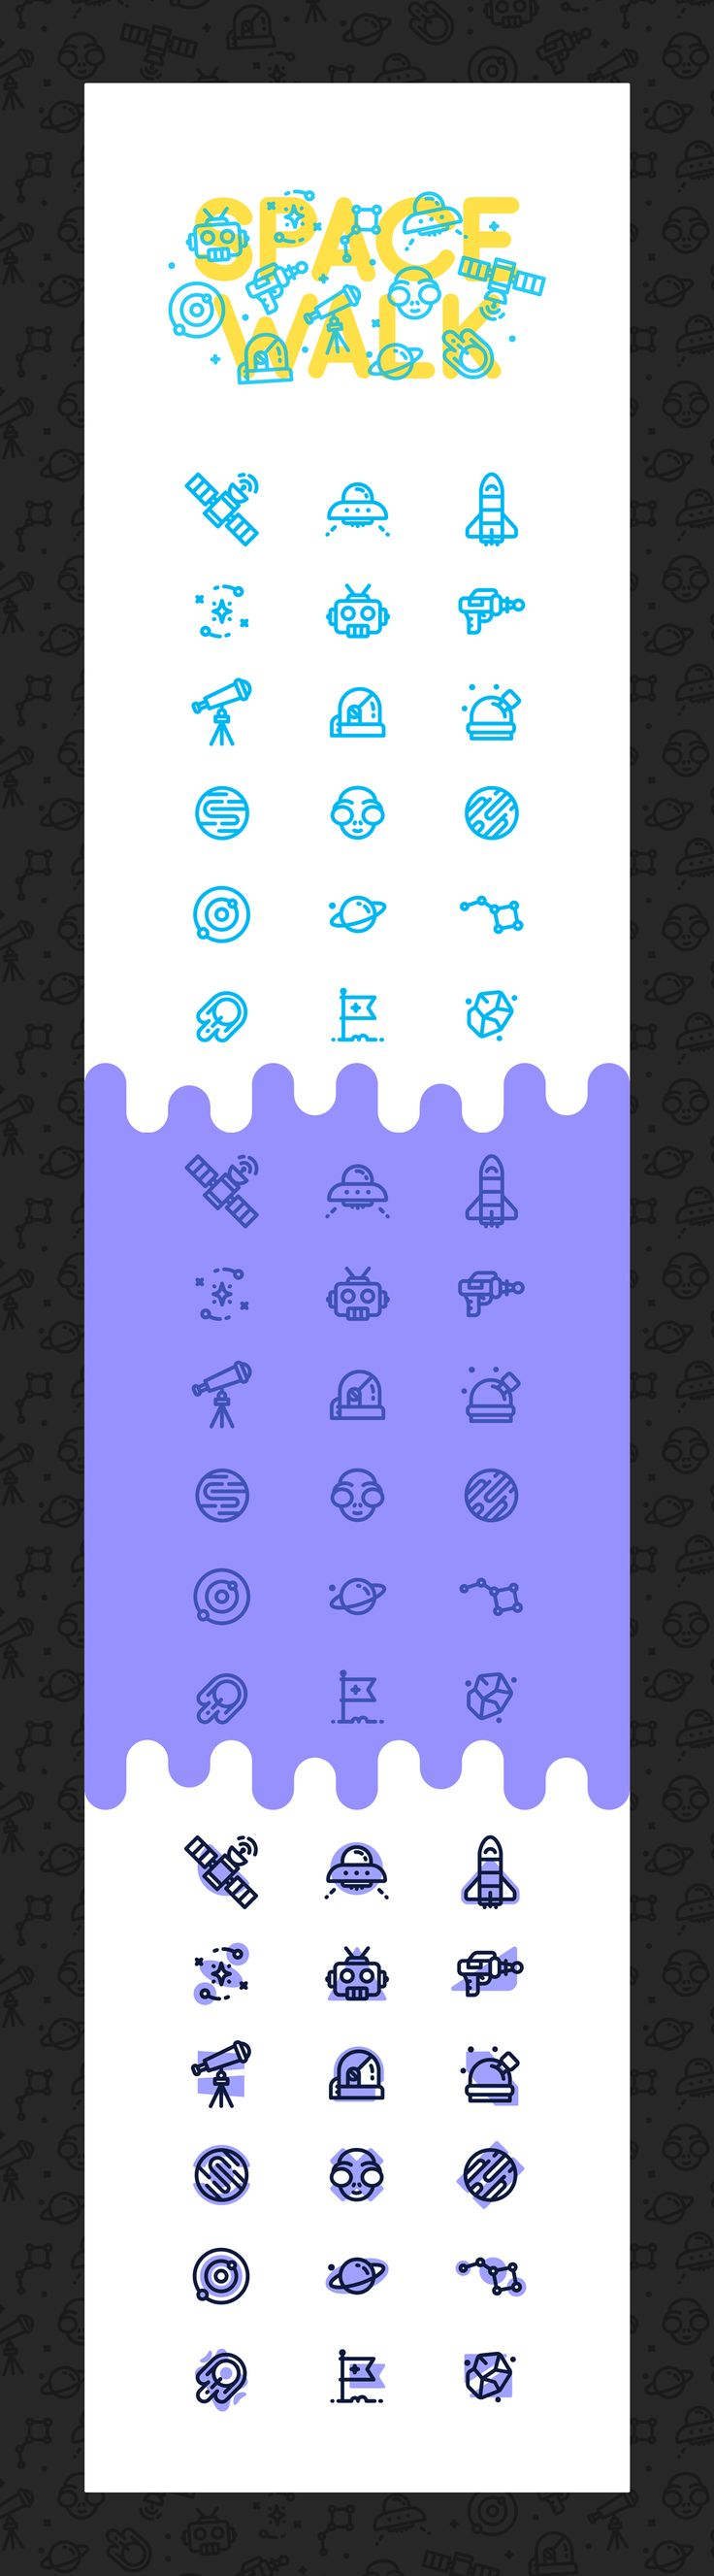 SpaceWalk / Icons & Patterns on Behance